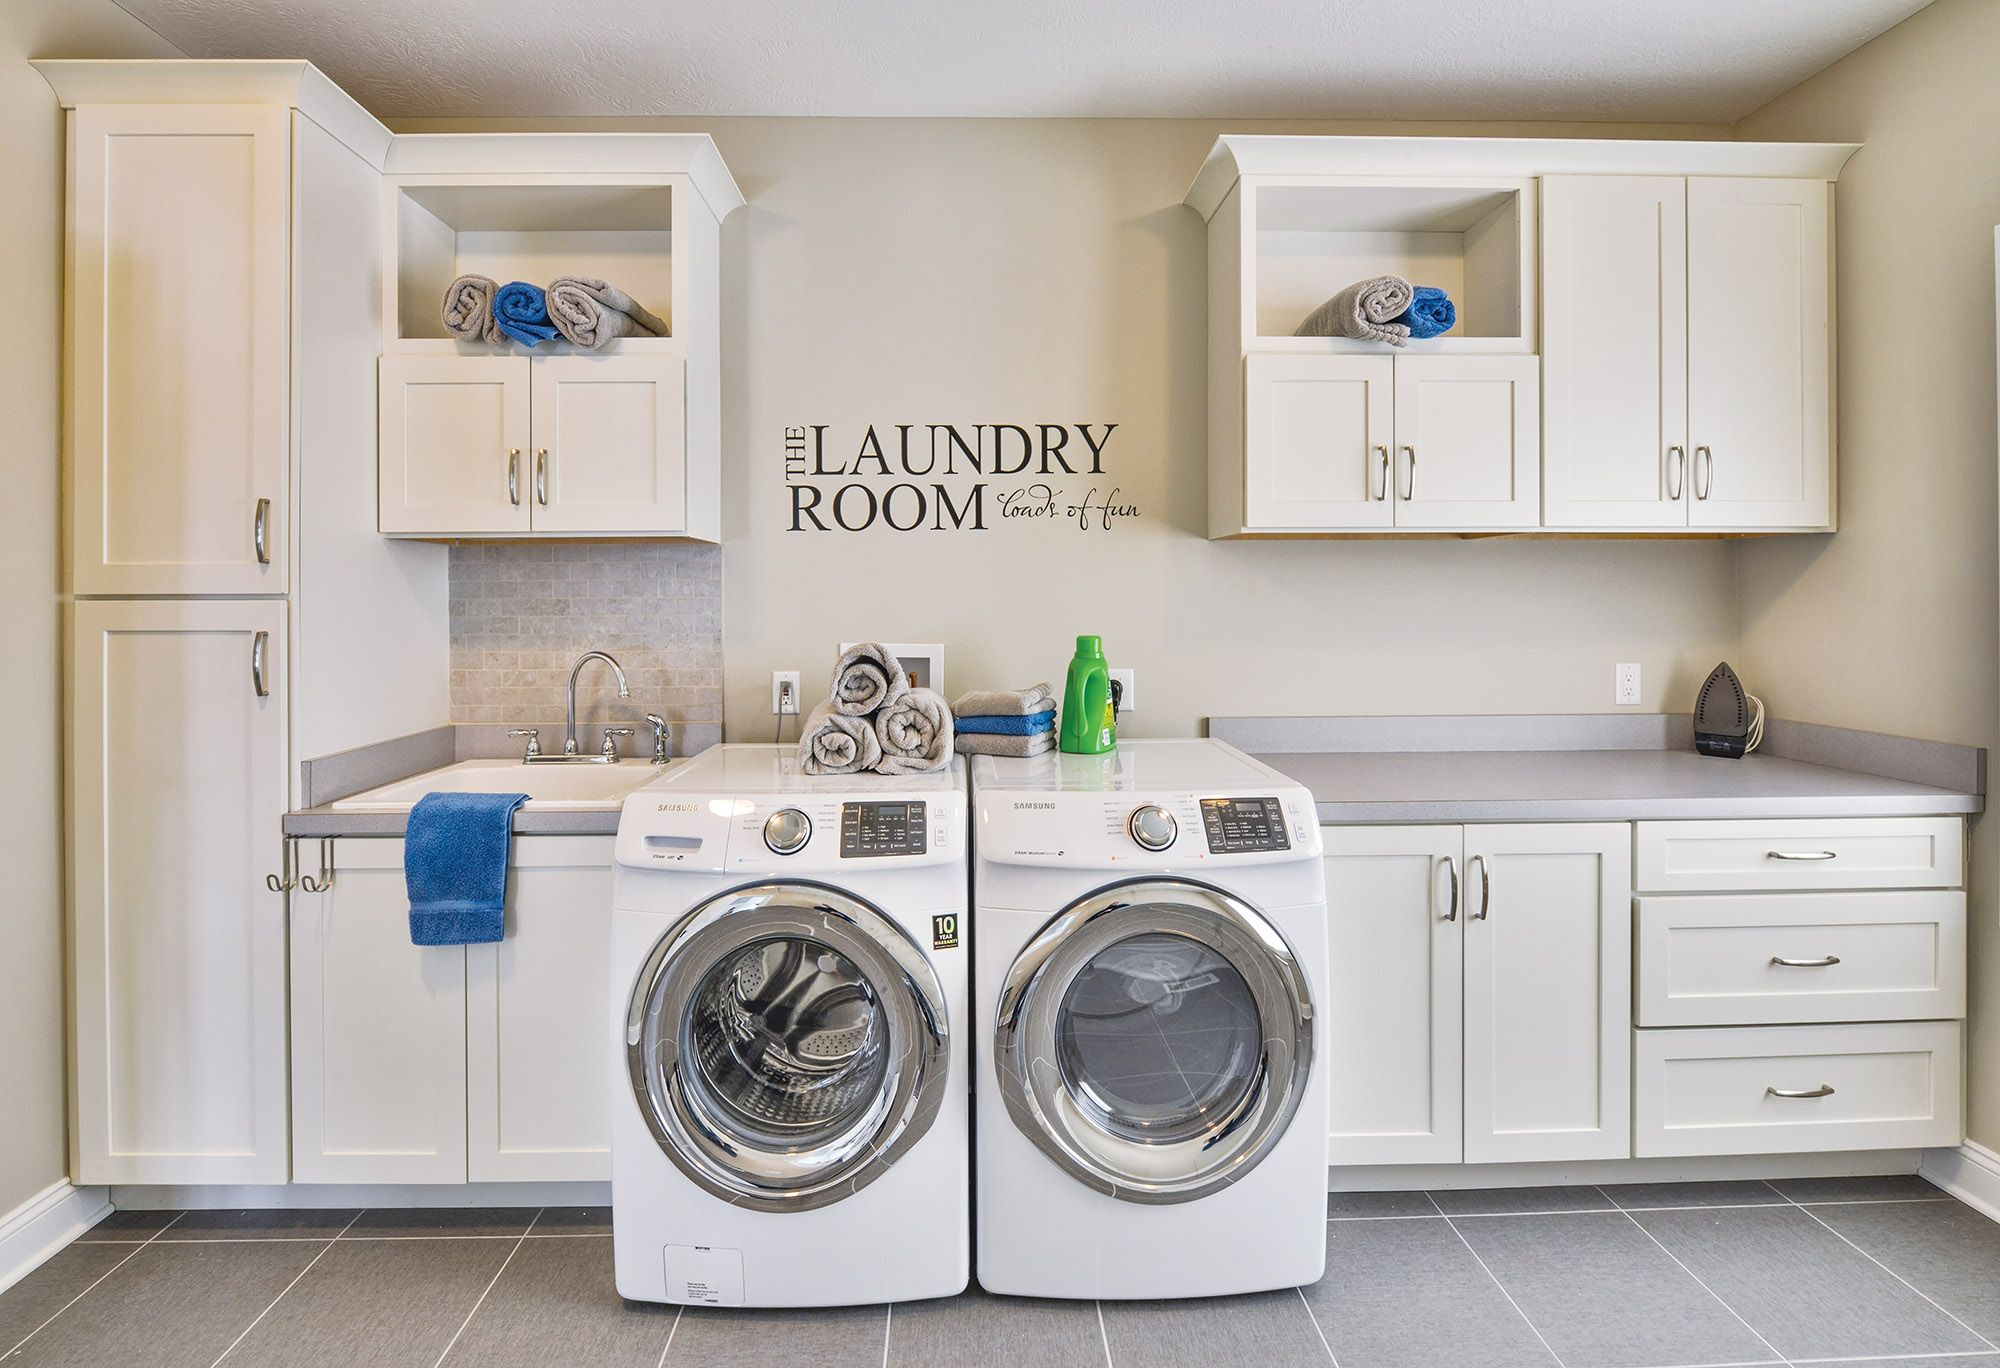 Laundry Room Remodel Featuring White Shaker Cabinets Laundry Room Remodel Laundry Room Cabinets White Laundry Rooms